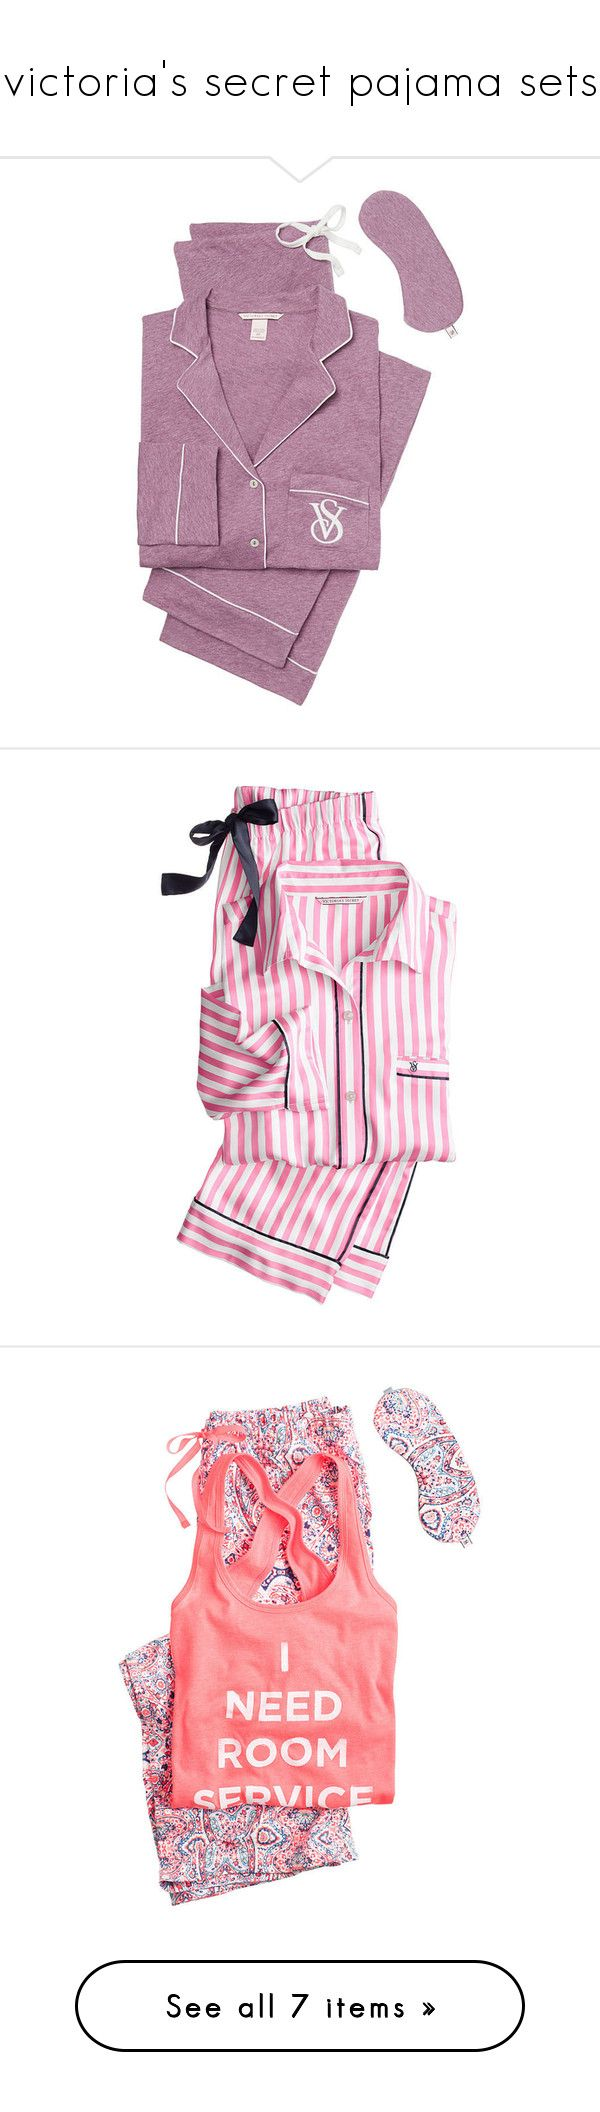 """victoria's secret pajama sets"" by babyprincessdarling ❤ liked on Polyvore featuring intimates, sleepwear, pajamas, victoria secret sleepwear, knit jersey, victoria secret jersey, petite pajamas, knit pajamas, victoria secret pjs and victoria's secret"